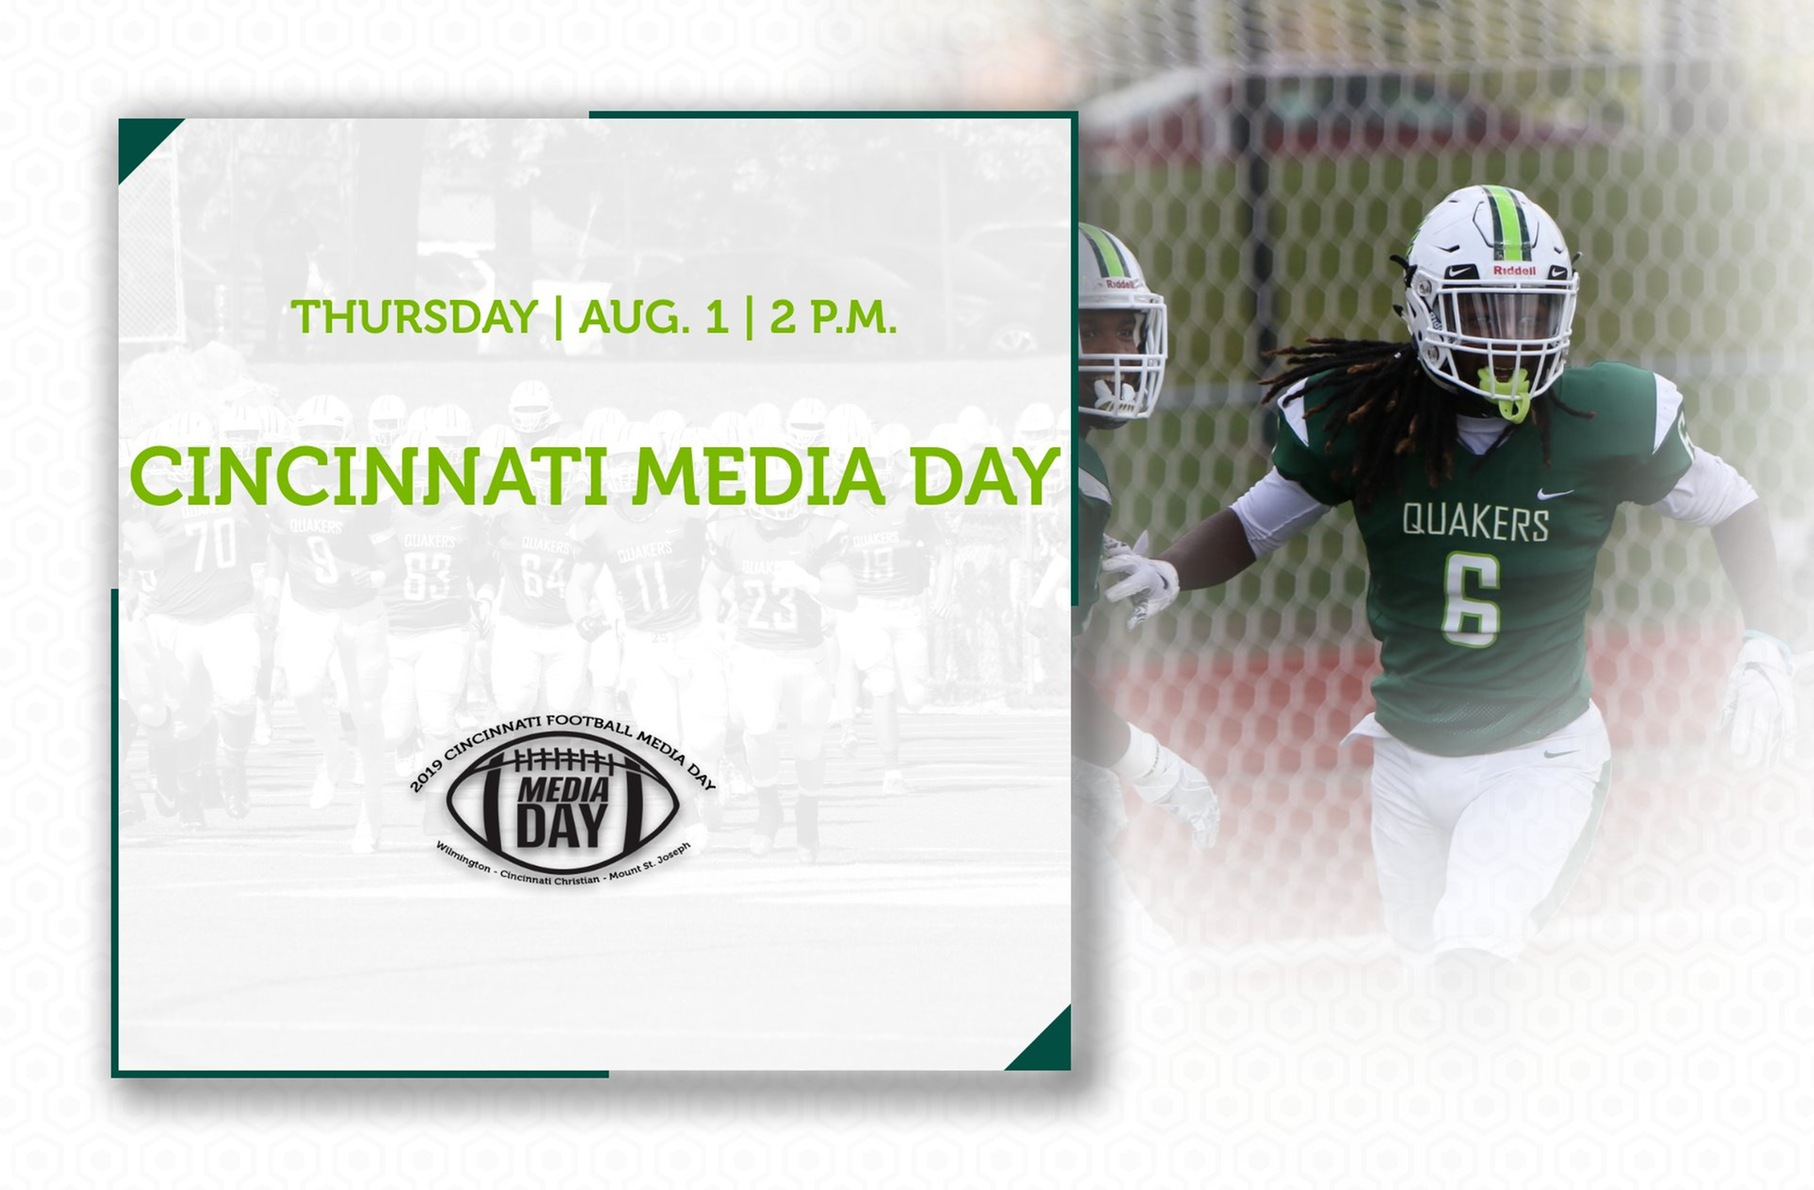 Football to Attend Cincinnati Media Day for Third Consecutive Year